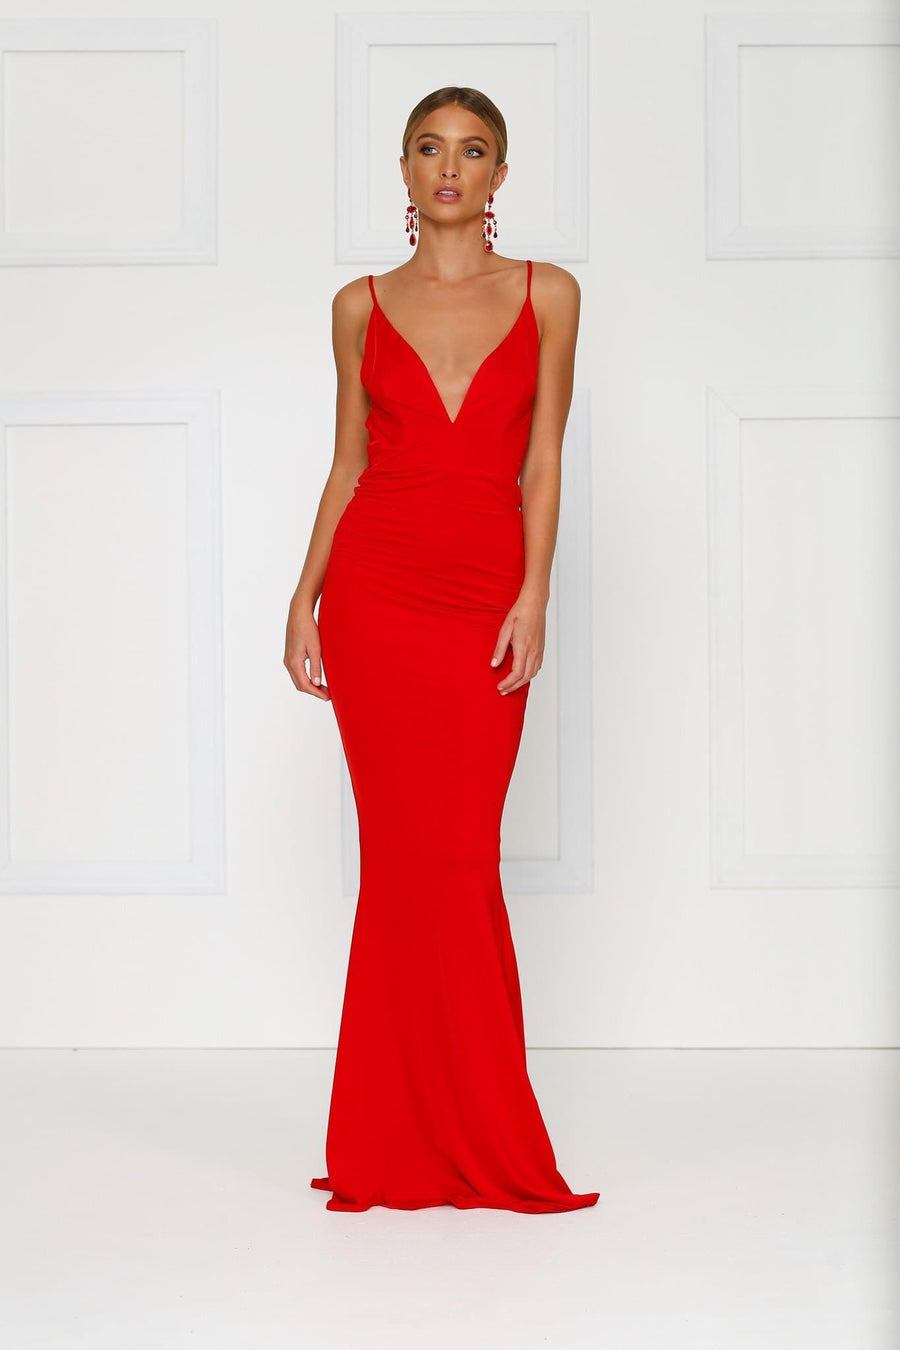 Red backless dress with a plunging neckline in a stretch fabric. Fitted formal dress prom dress